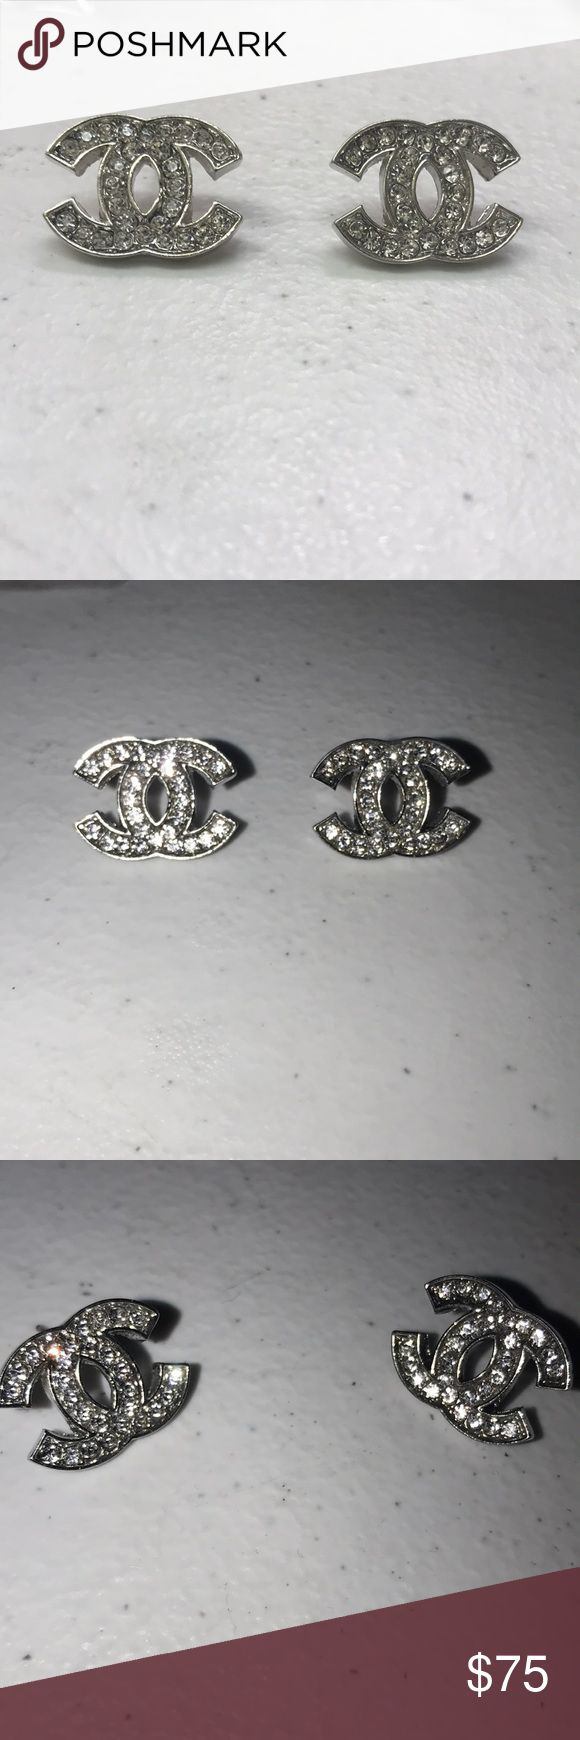 Chanel earrings Cc silver Chanel earrings Jewelry Earrings